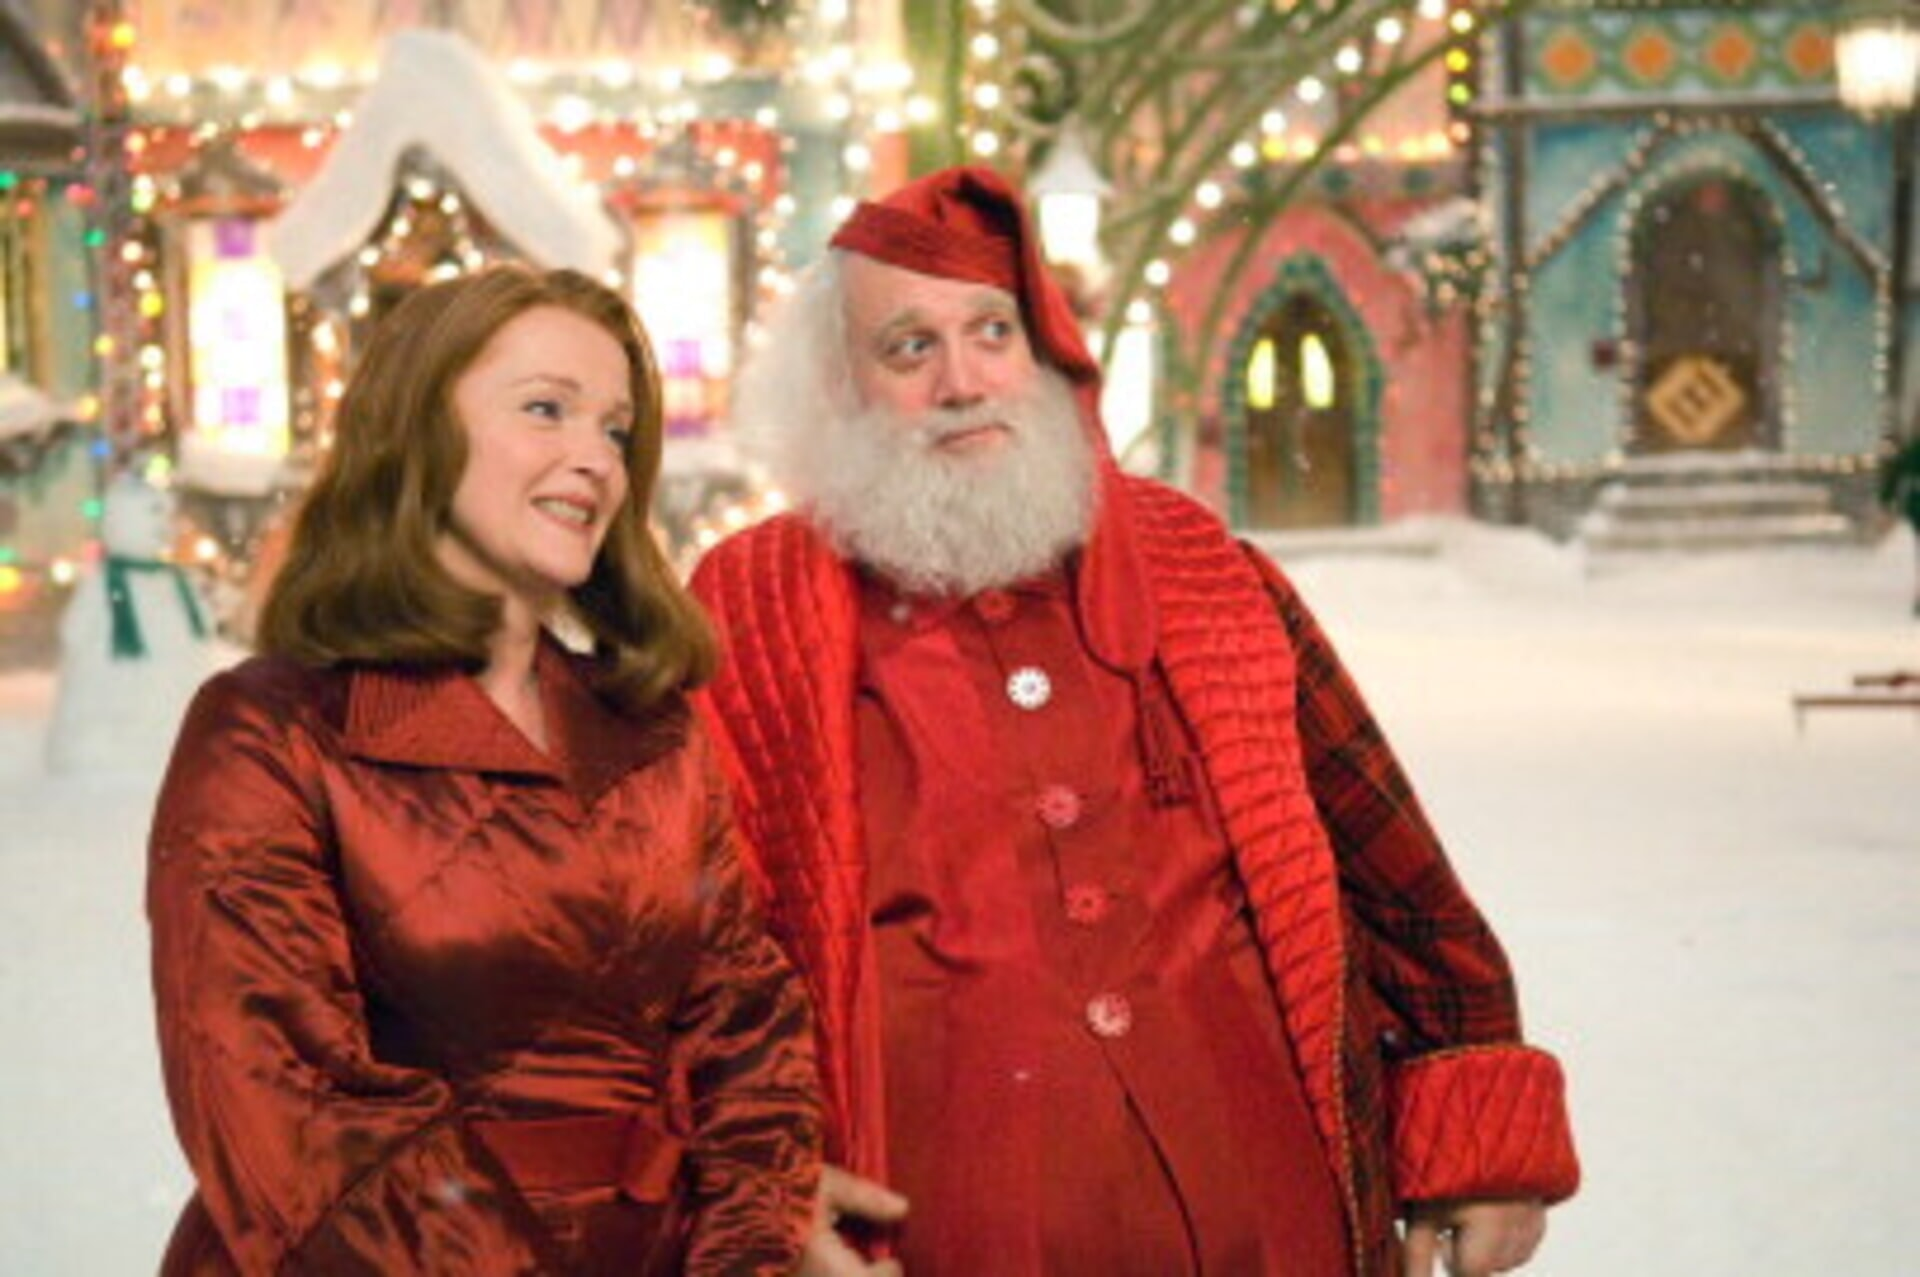 Fred Claus - Image 38